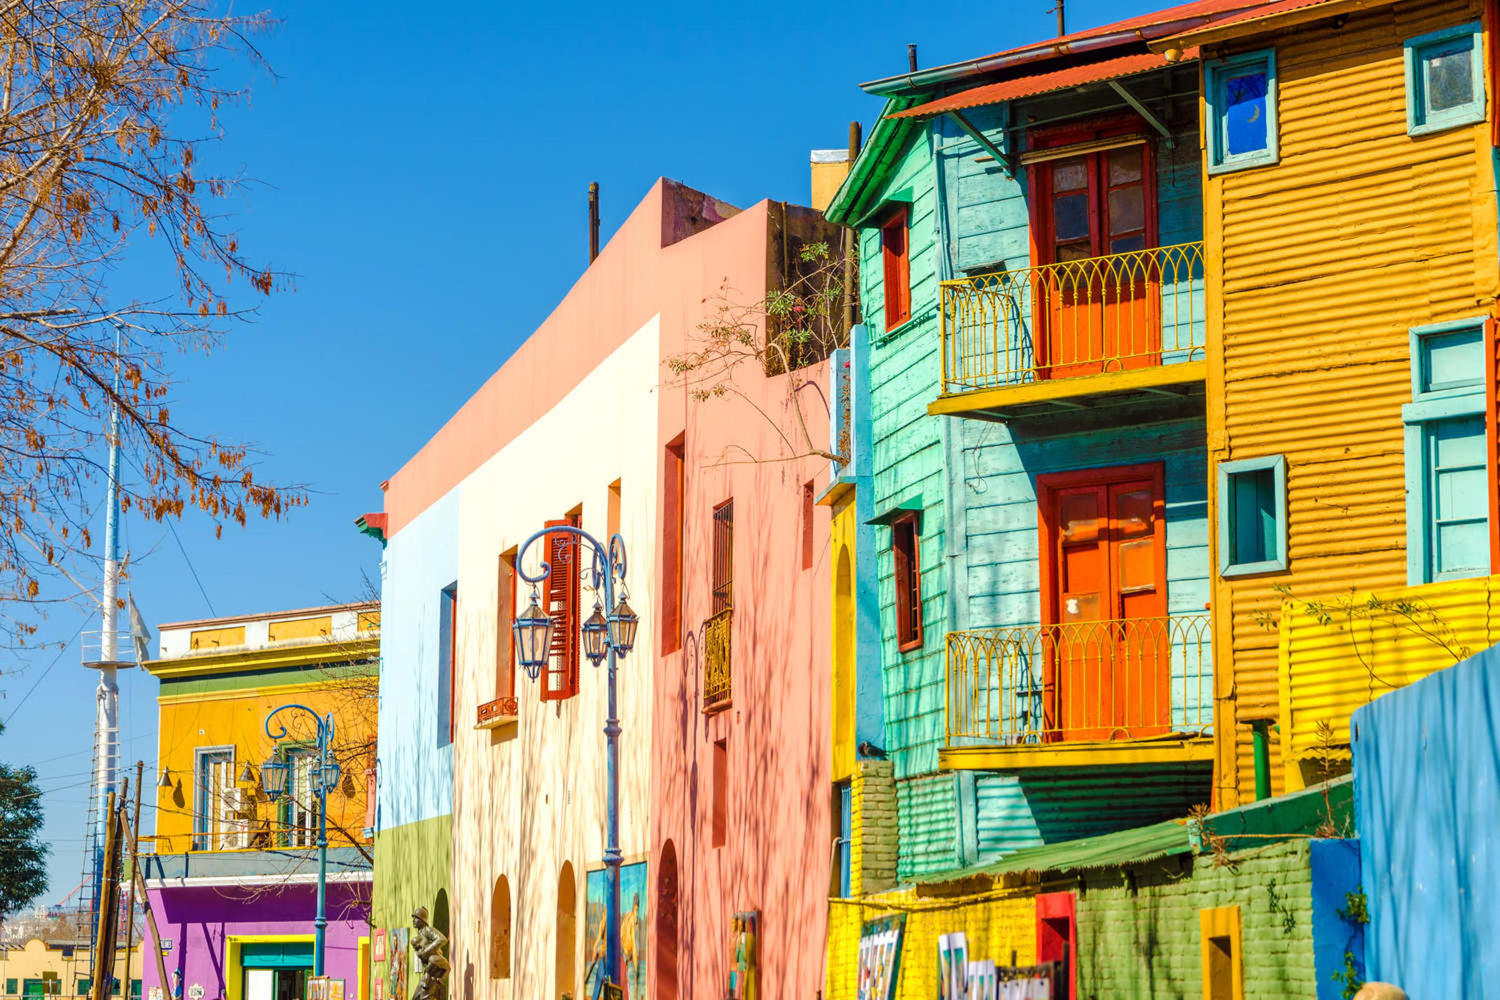 Bright colors of Caminito street in La Boca neighborhood